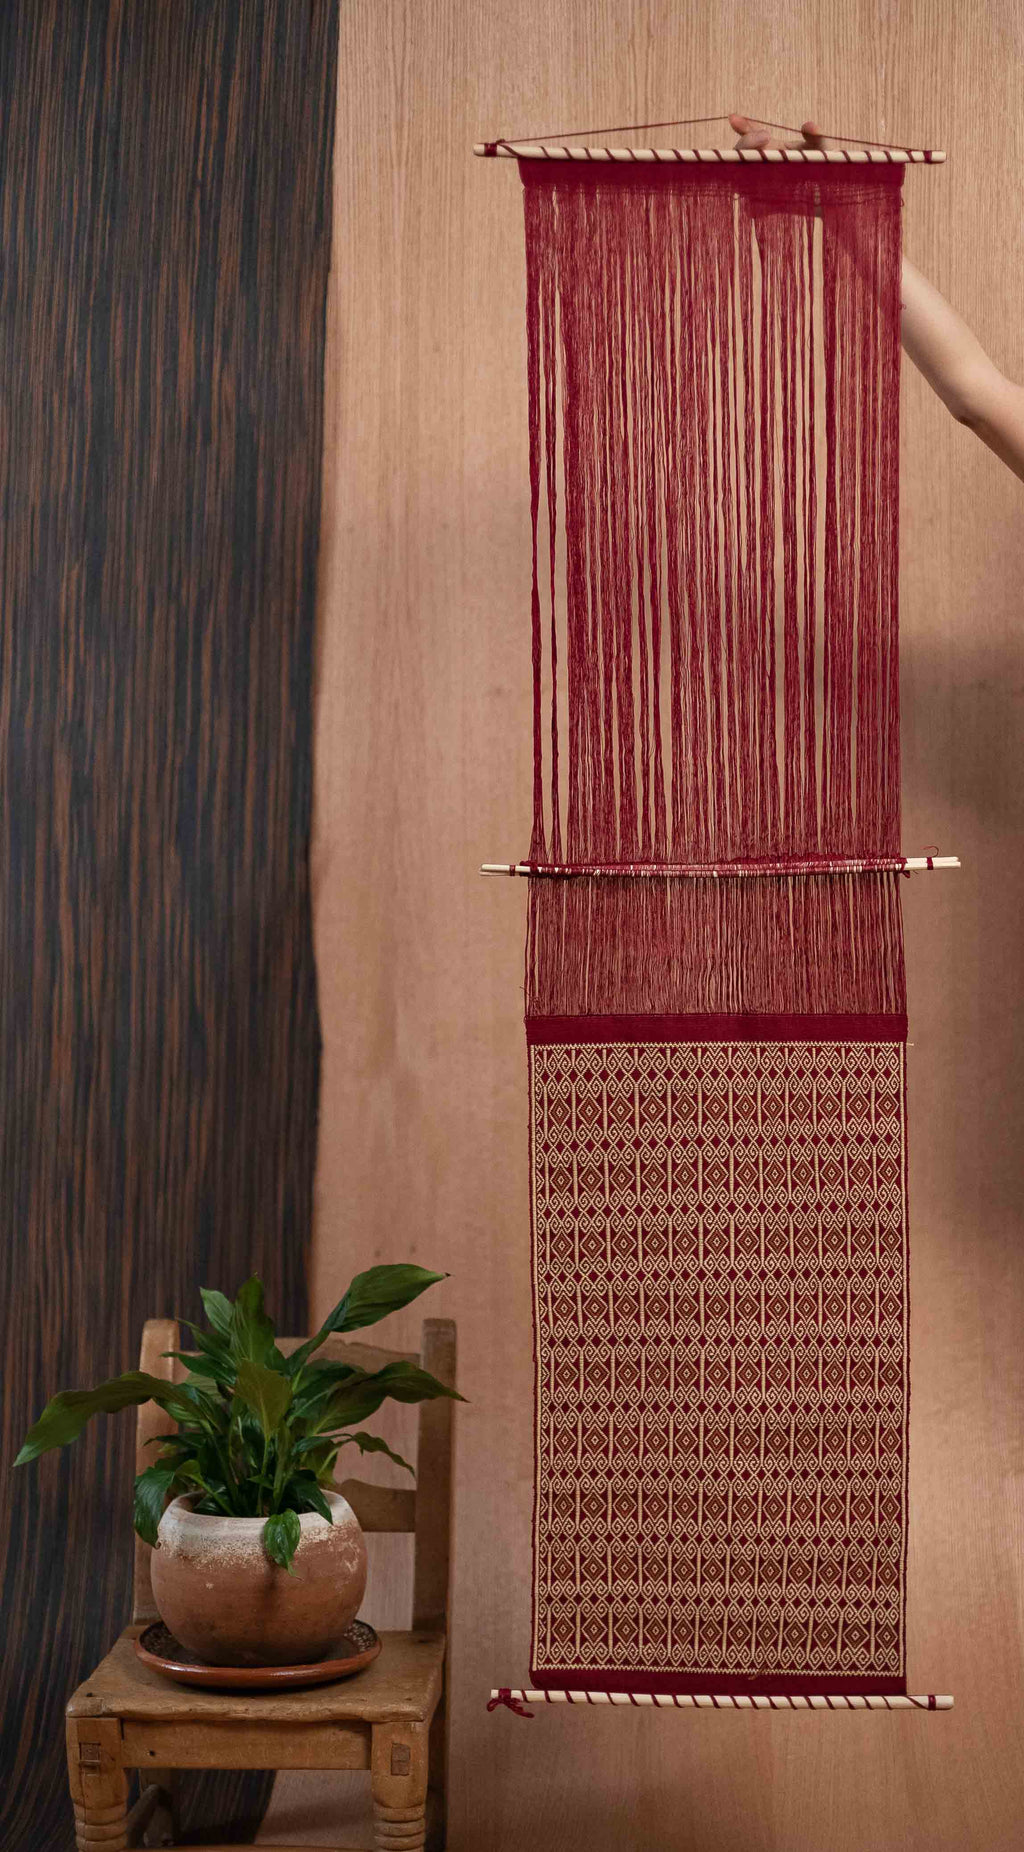 Cream red wall loom - TOCO MADERA - Handcraft shoe from Mexico - Handmade shoe